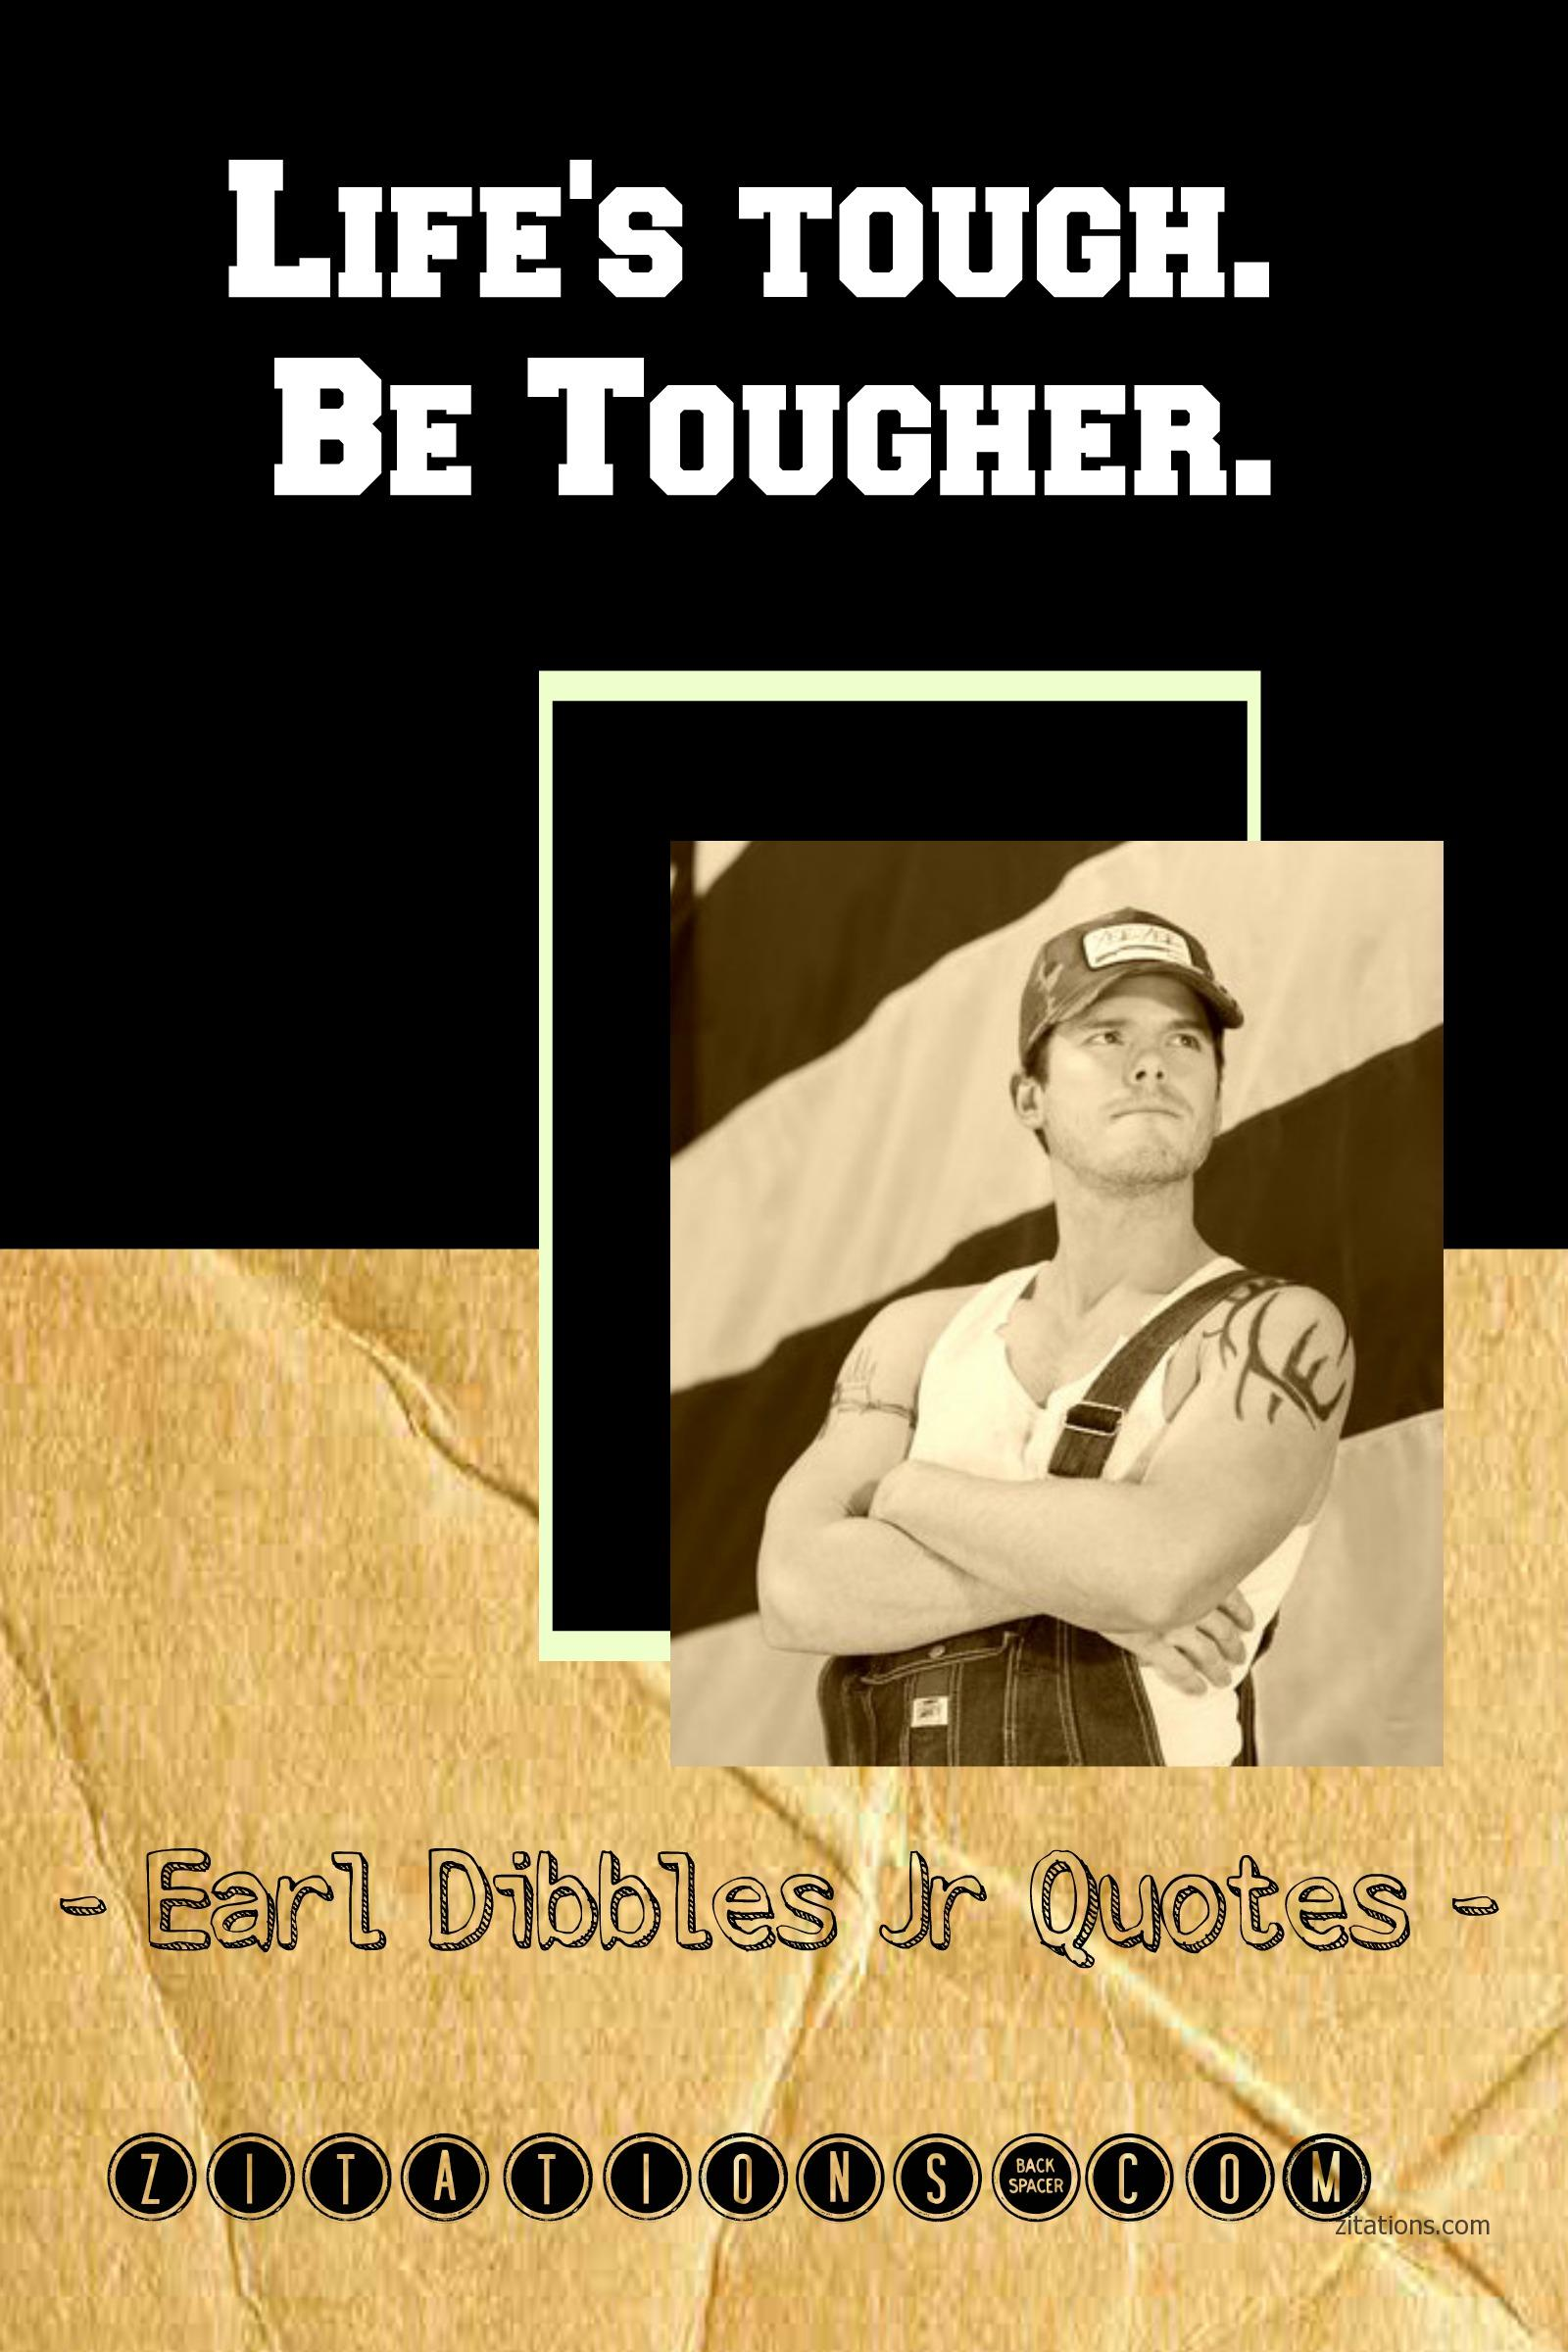 Earl Dibbles Jr Quotes on Life